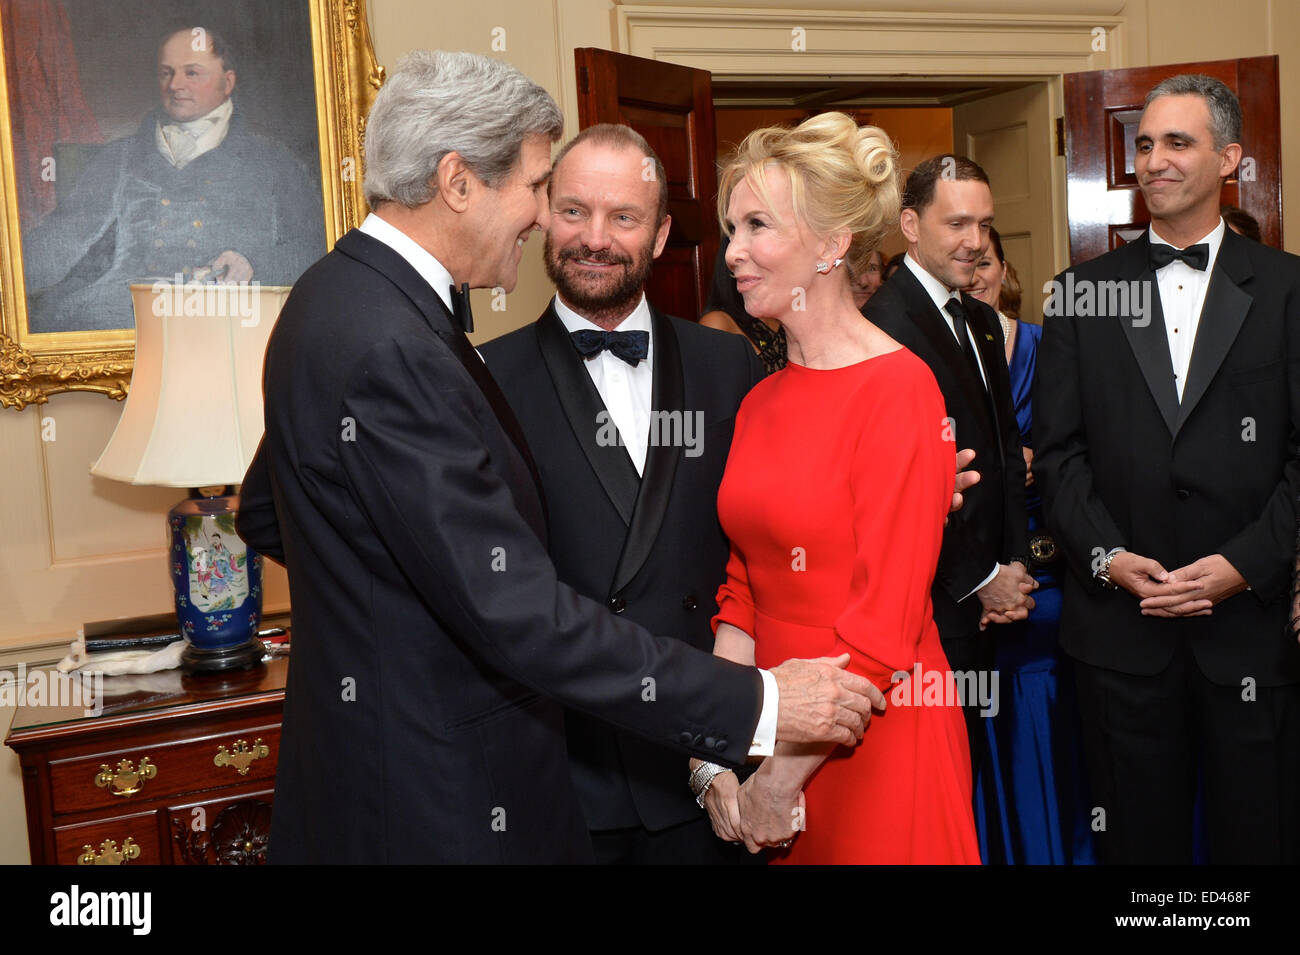 U.S. Secretary of State John Kerry greets 2014 Kennedy Center Honoree singer-songwriter Sting and his wife, Trudie Styler, before a dinner he hosted in honor of the Honorees at the U.S. Department of State in Washington, D.C., on December 6, 2014. Stock Photo